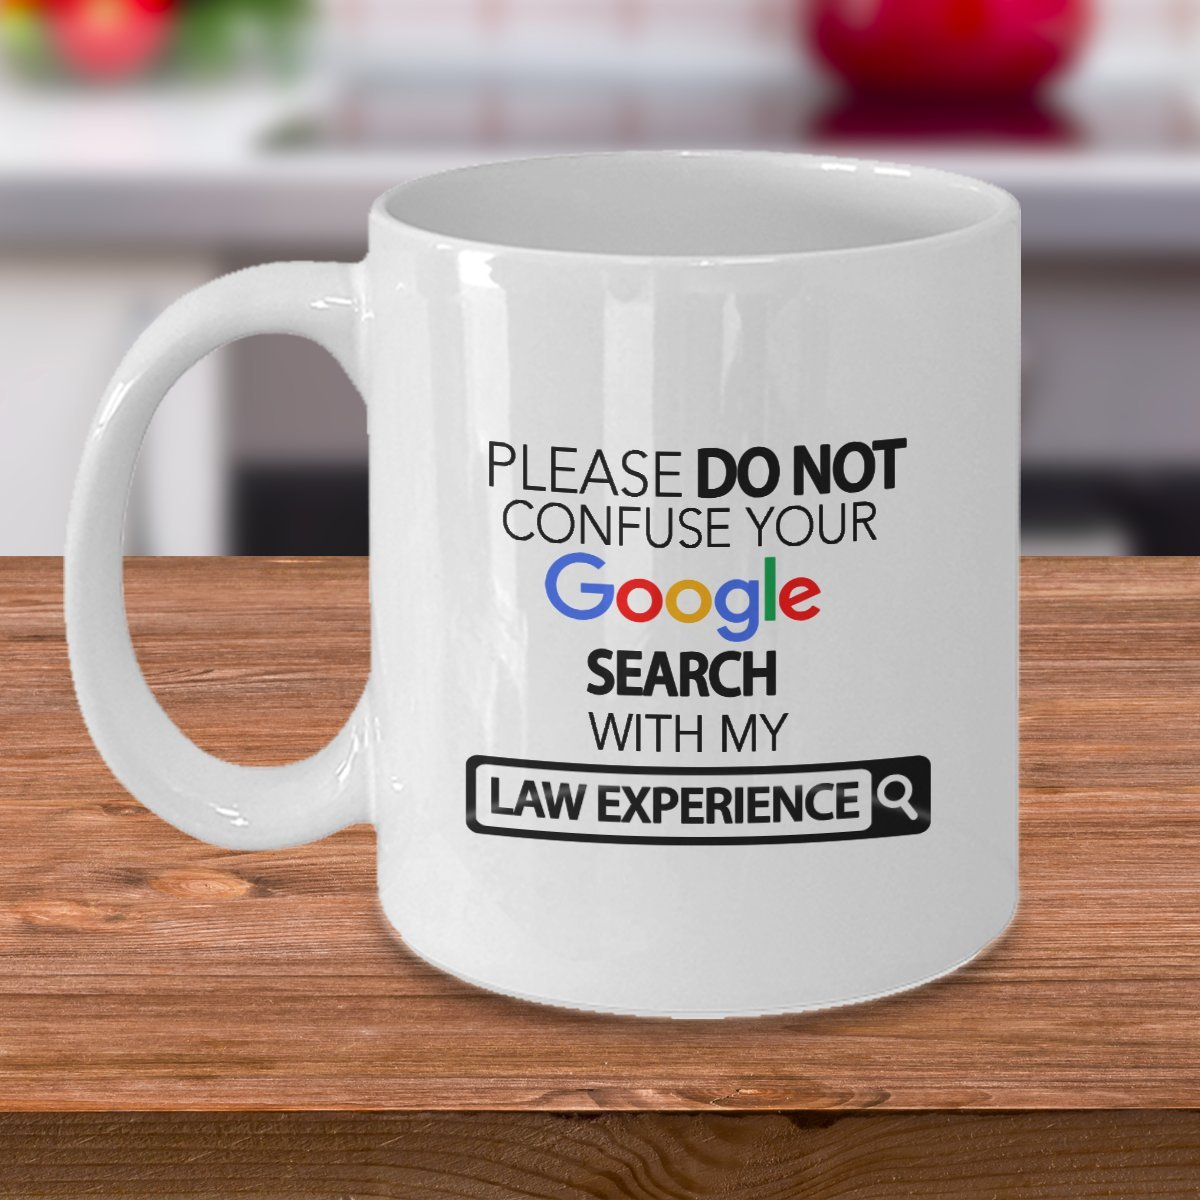 Amazon.com: Law Mug - Please Do Not Confuse Your Google Search With My Law  Experience - Law Lawyer Gifts Coffee Cup Accessories Funny Unique Gift  Idea: Home ...